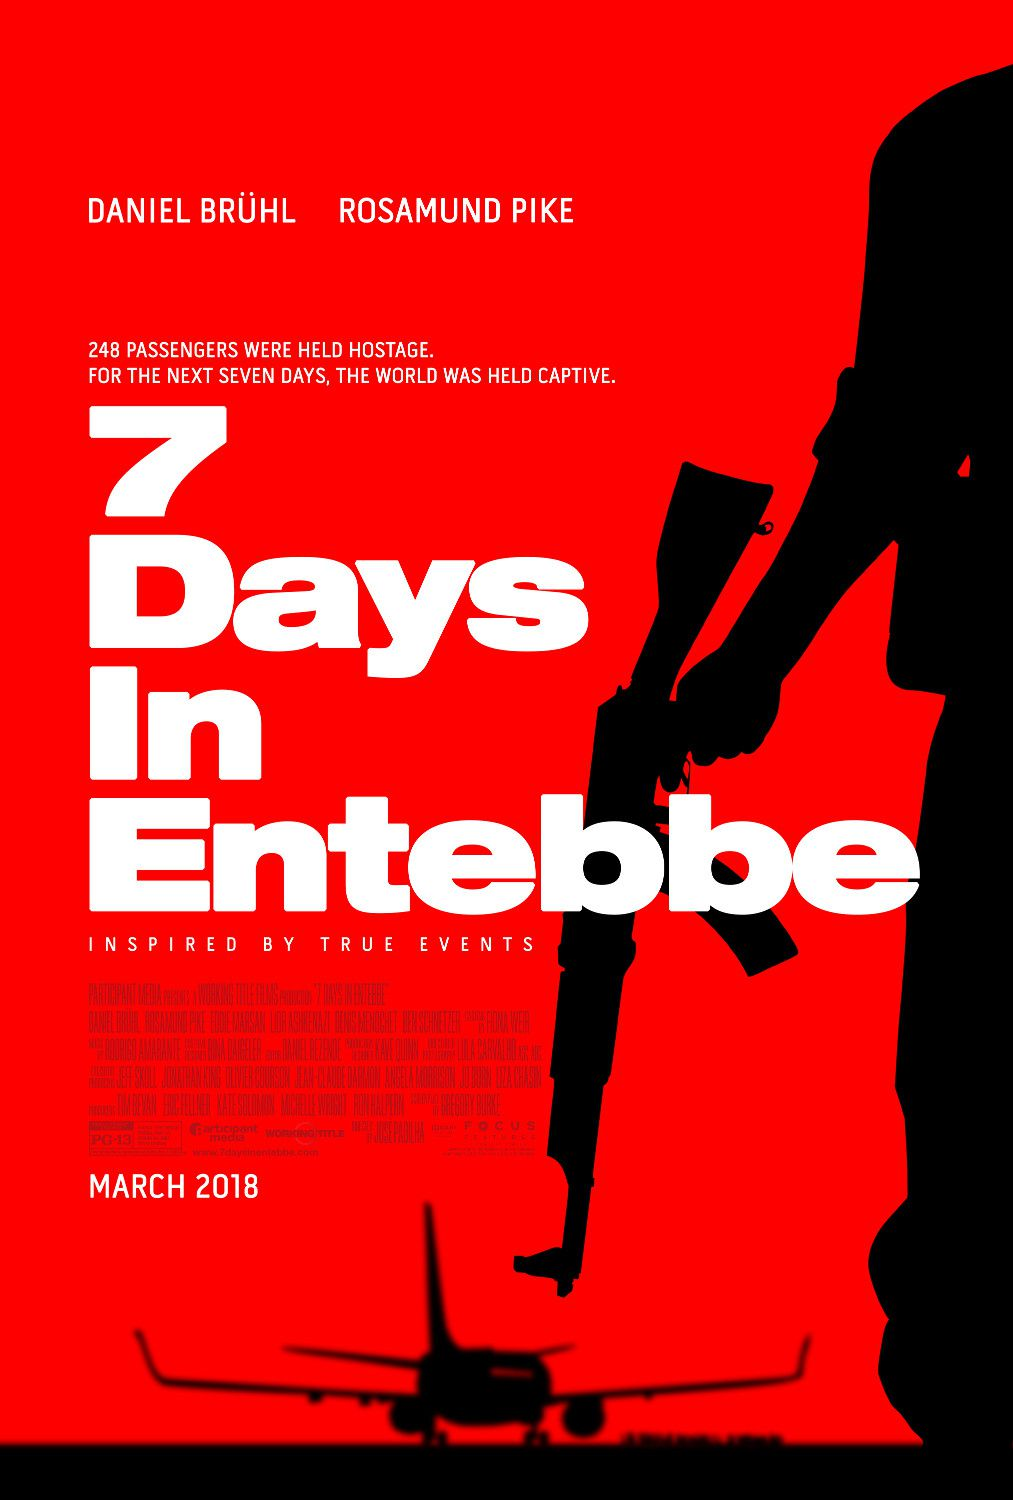 7 Days in Entebbe - film poster 2018